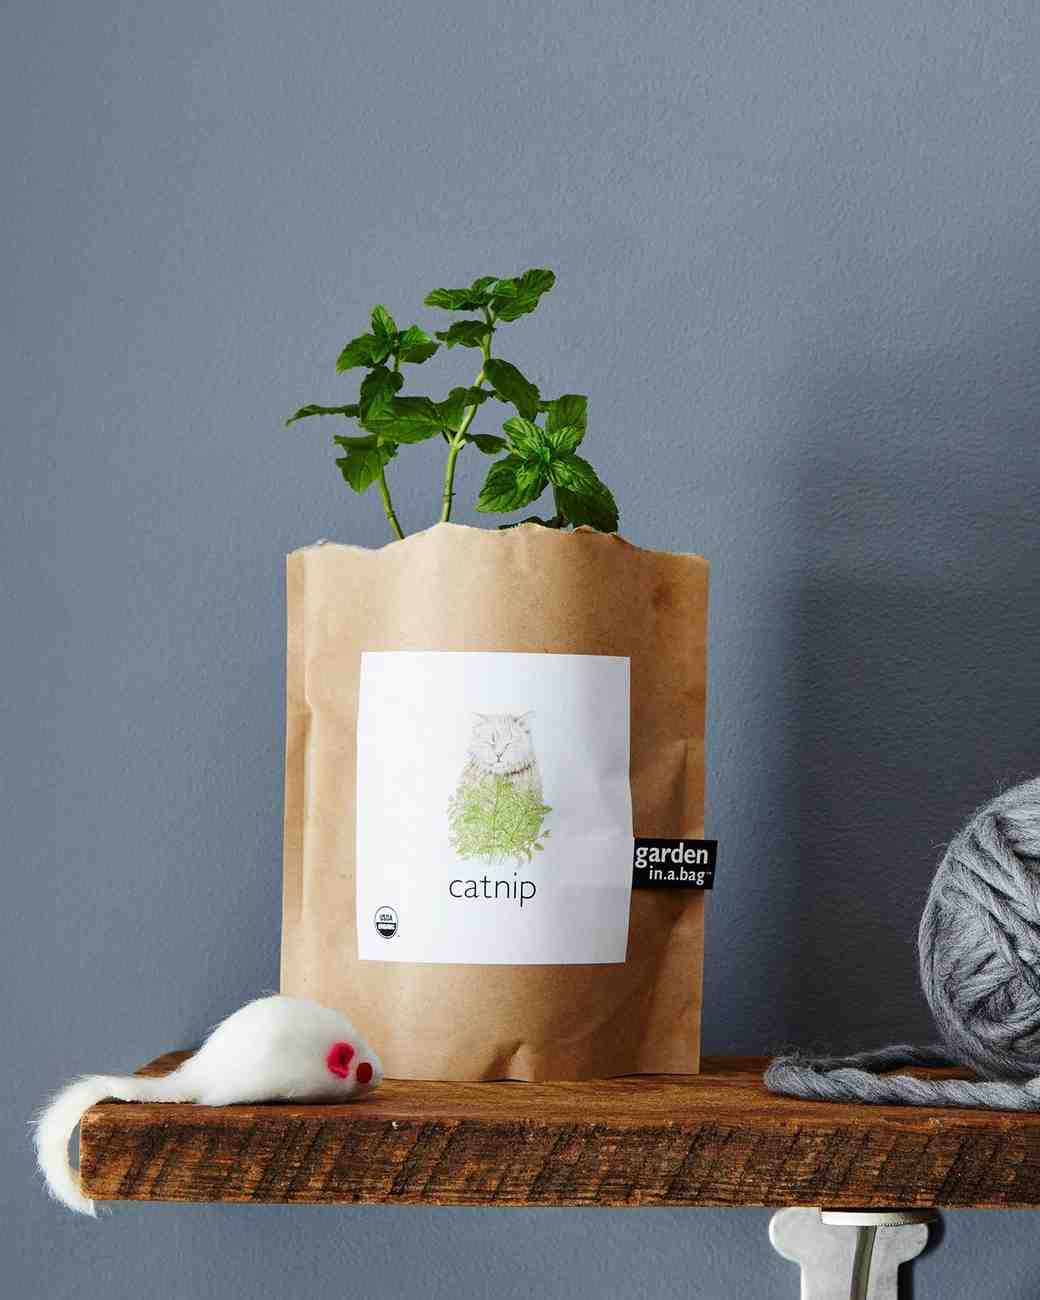 garden in a bag catnip